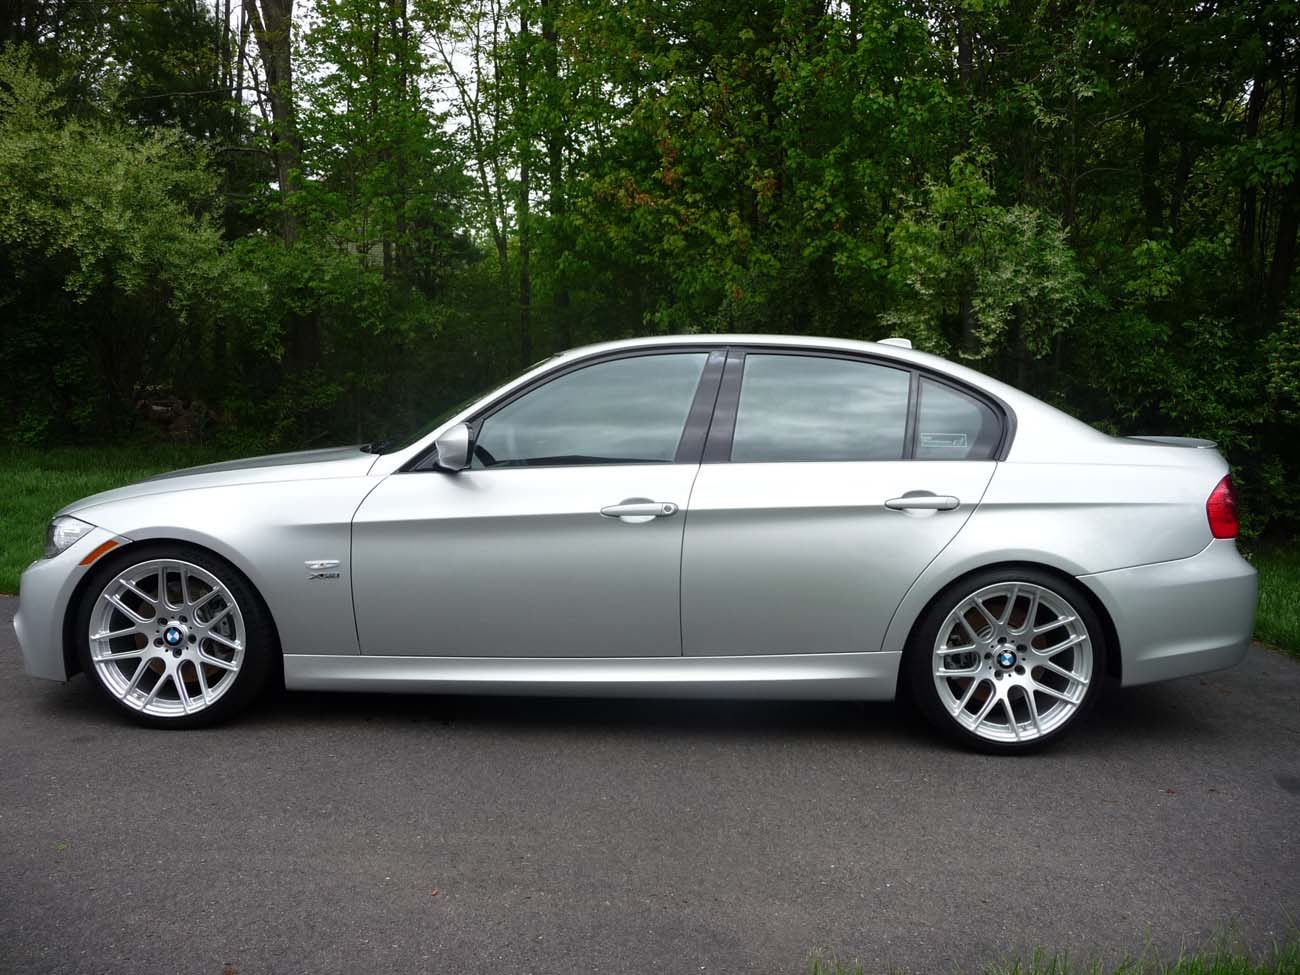 Best Suspension for Daily Driver 335xi E90